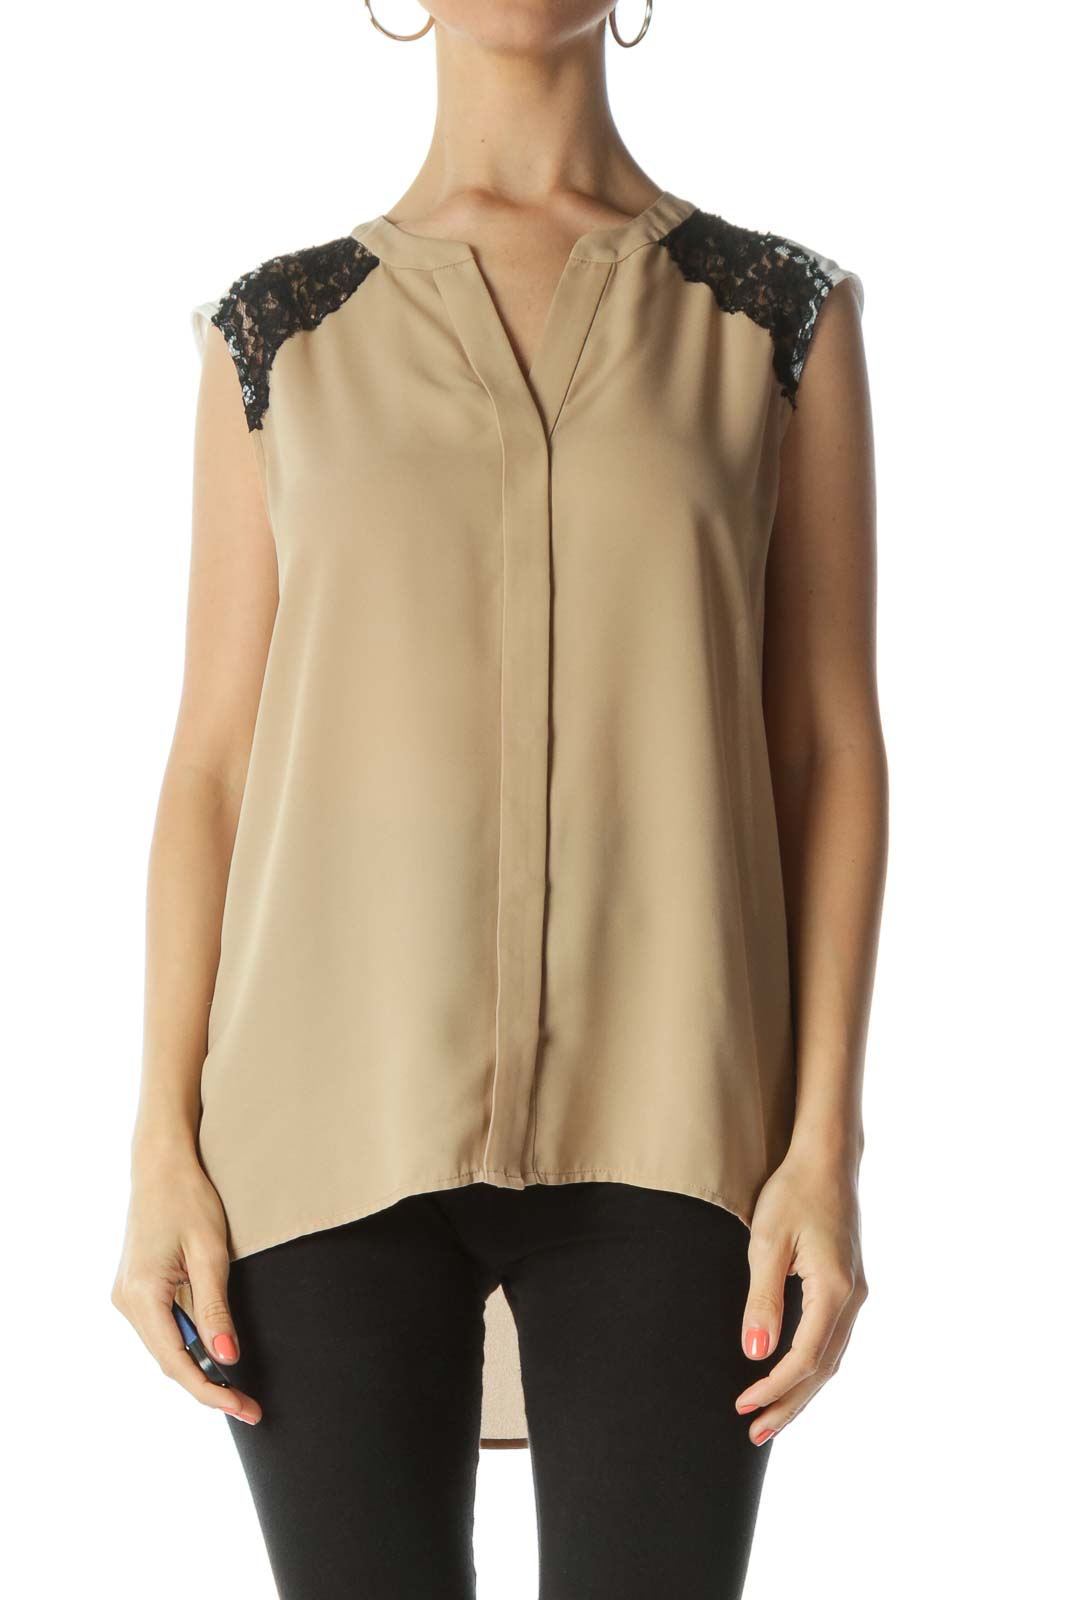 Beige/Black/White Lace-Applique Buttoned Tank Top